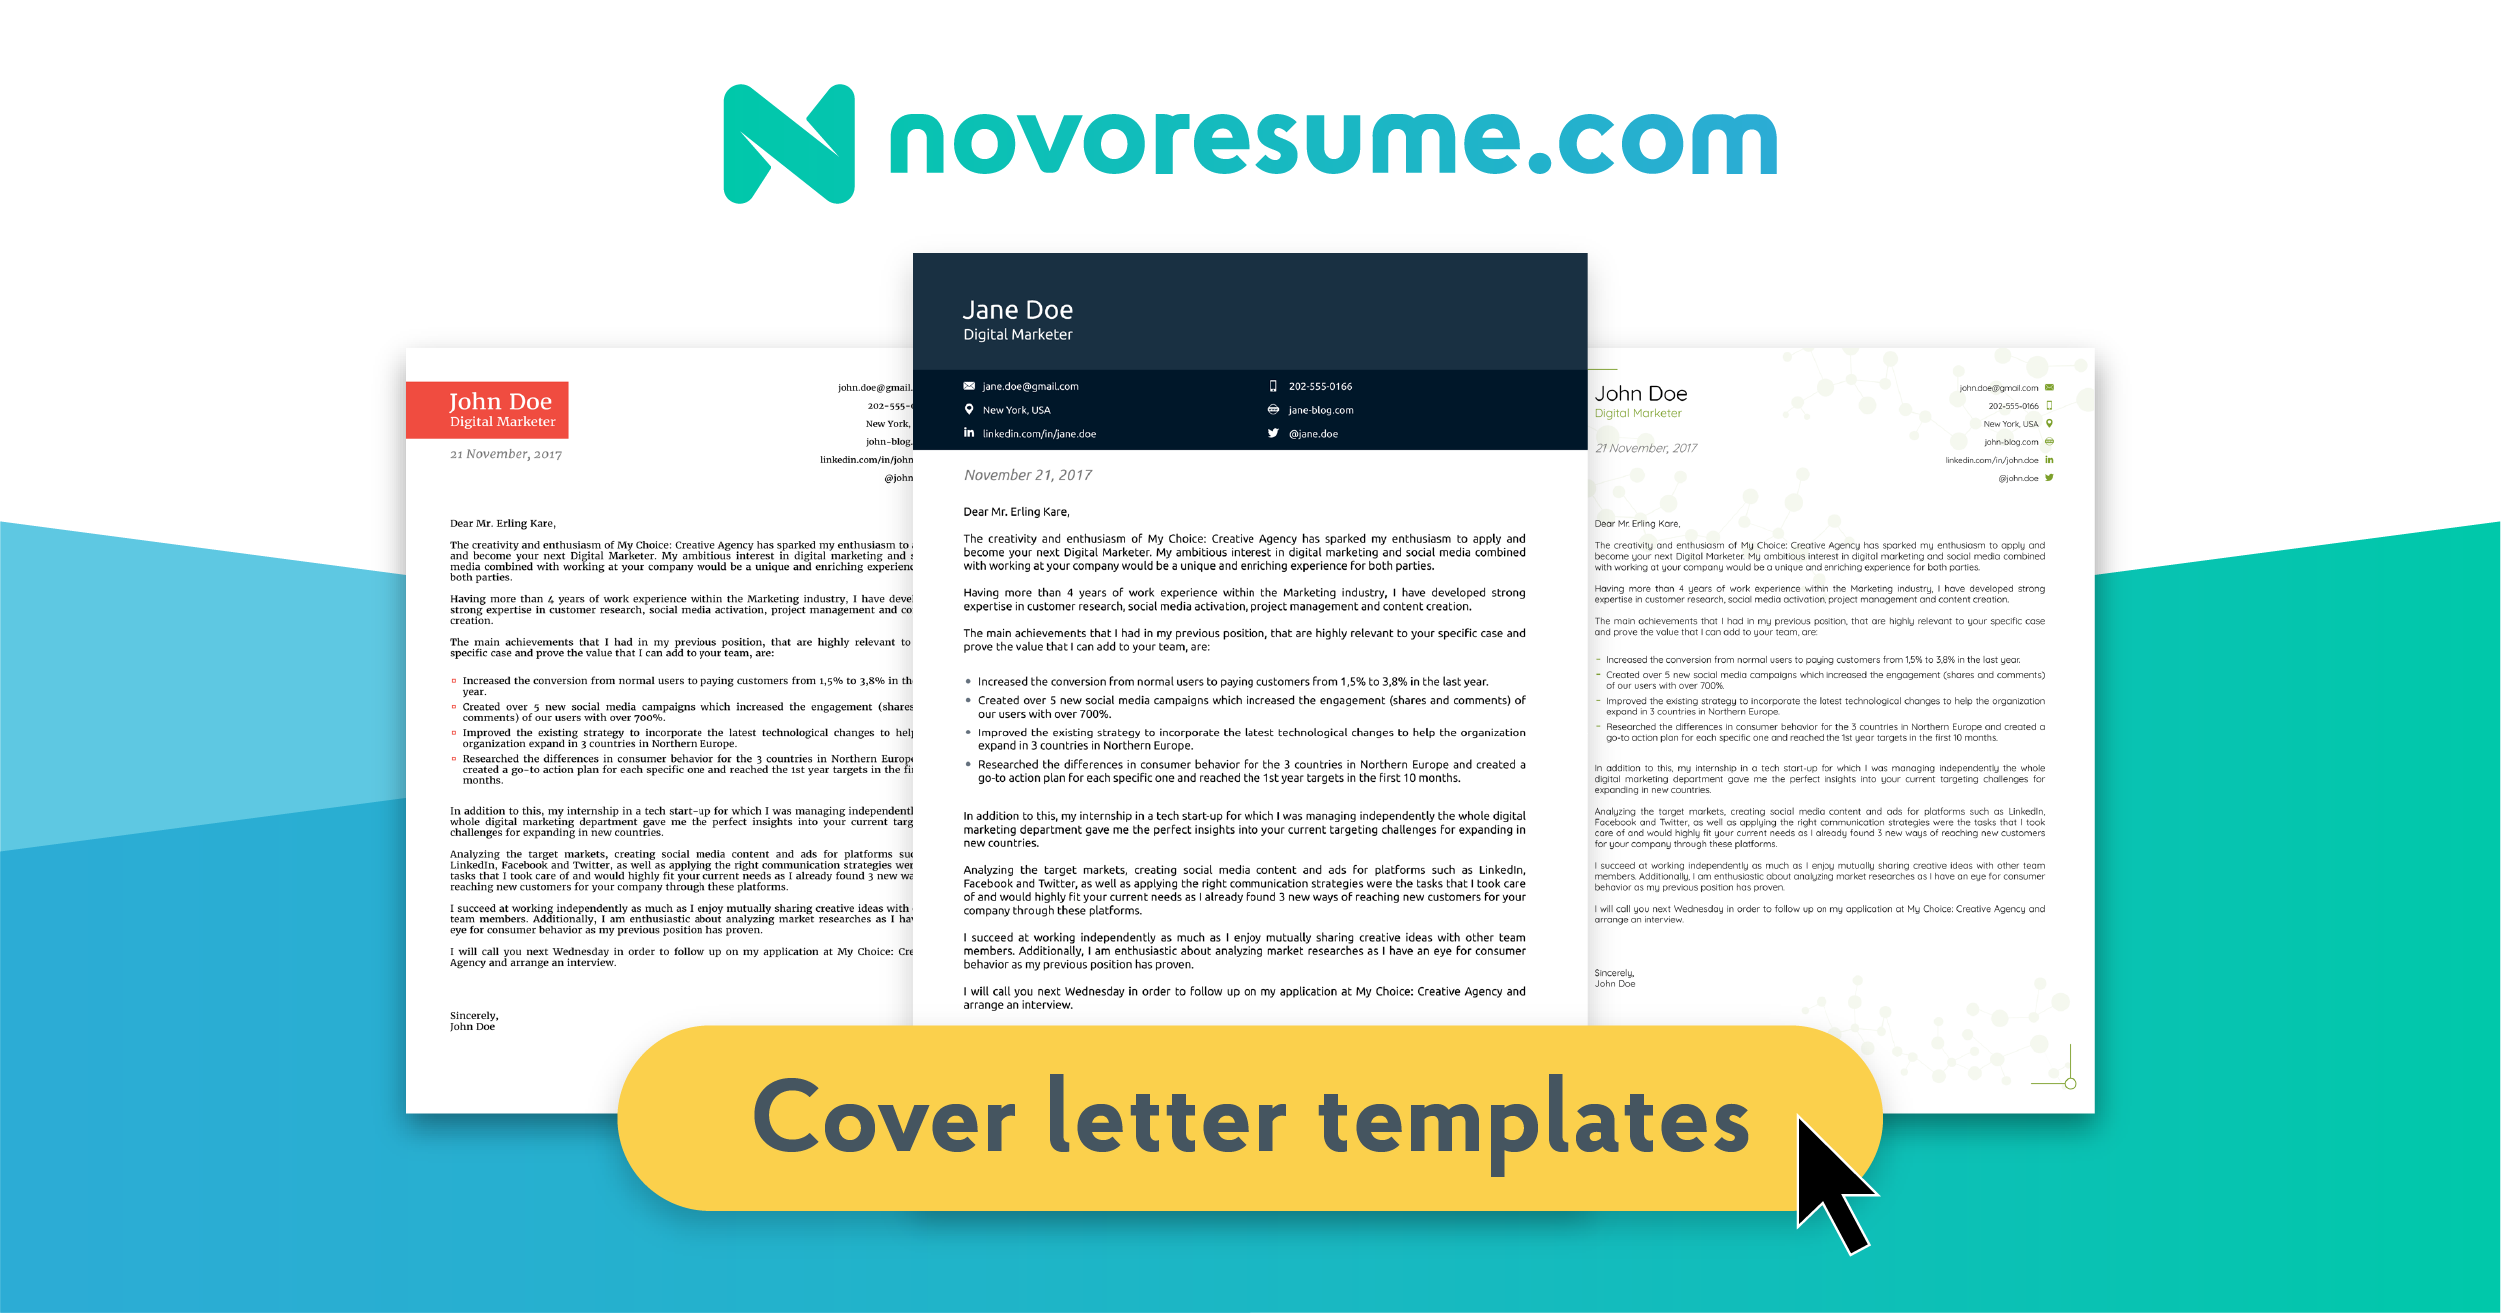 8+ Cover Letter Templates for 2020 [That HR Will !] on letter design objects, letter design examples, letter design stencils, letter design christmas, letter design paper, letter design ideas, letter design fonts, letter design cards, letter design printables, letter typography, letter g designs, letter design drawings, letter design clipart, letter t designs, letter design logos, letter design help,